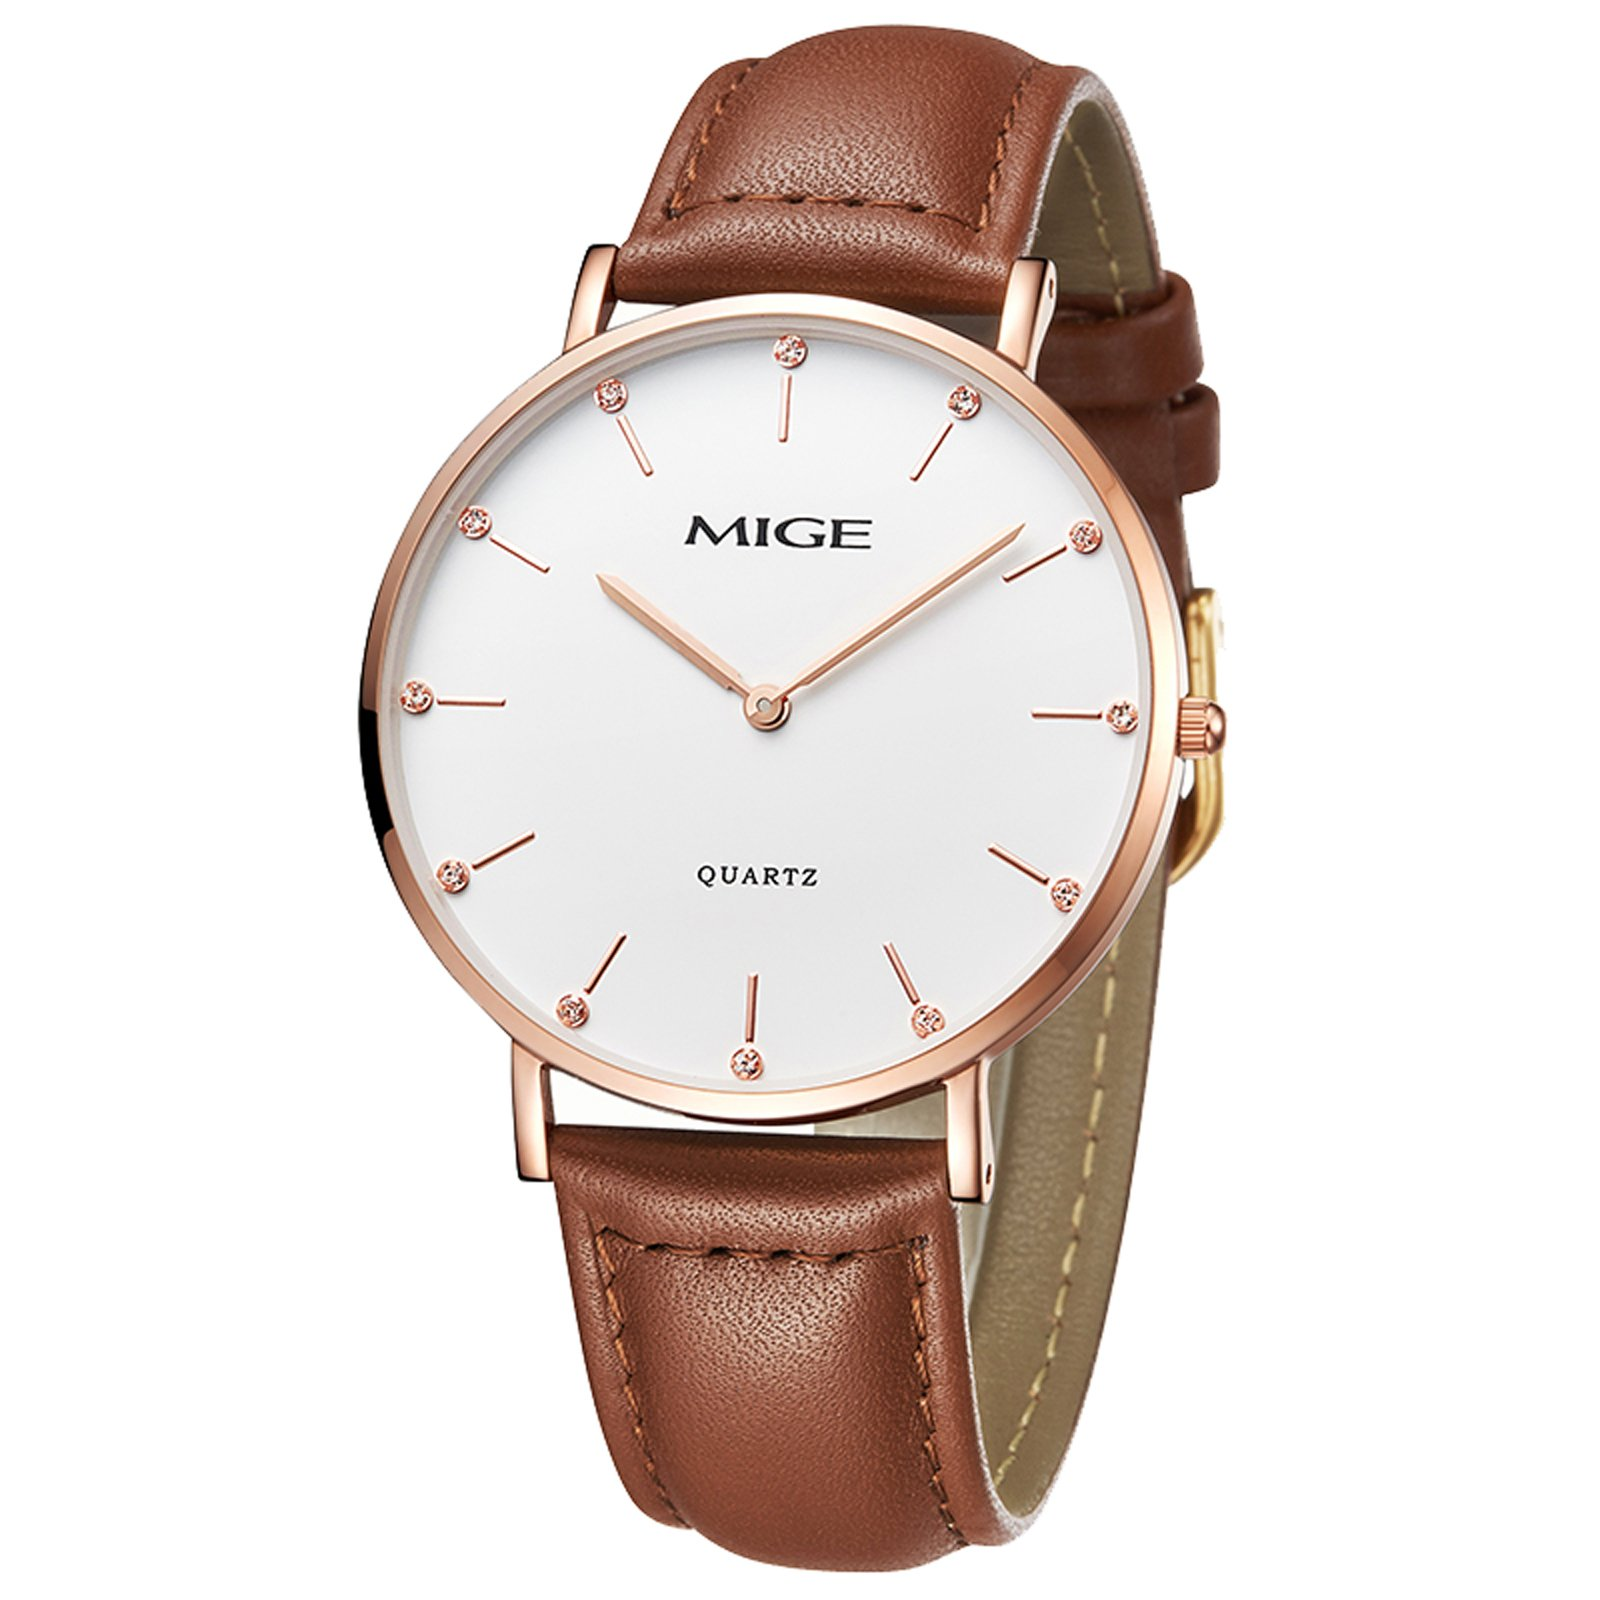 MIGE Watches-ZLIMSN Men Casual Business Thin Full Genuine Leather With Gift Box Male Wrist Quartz Watch